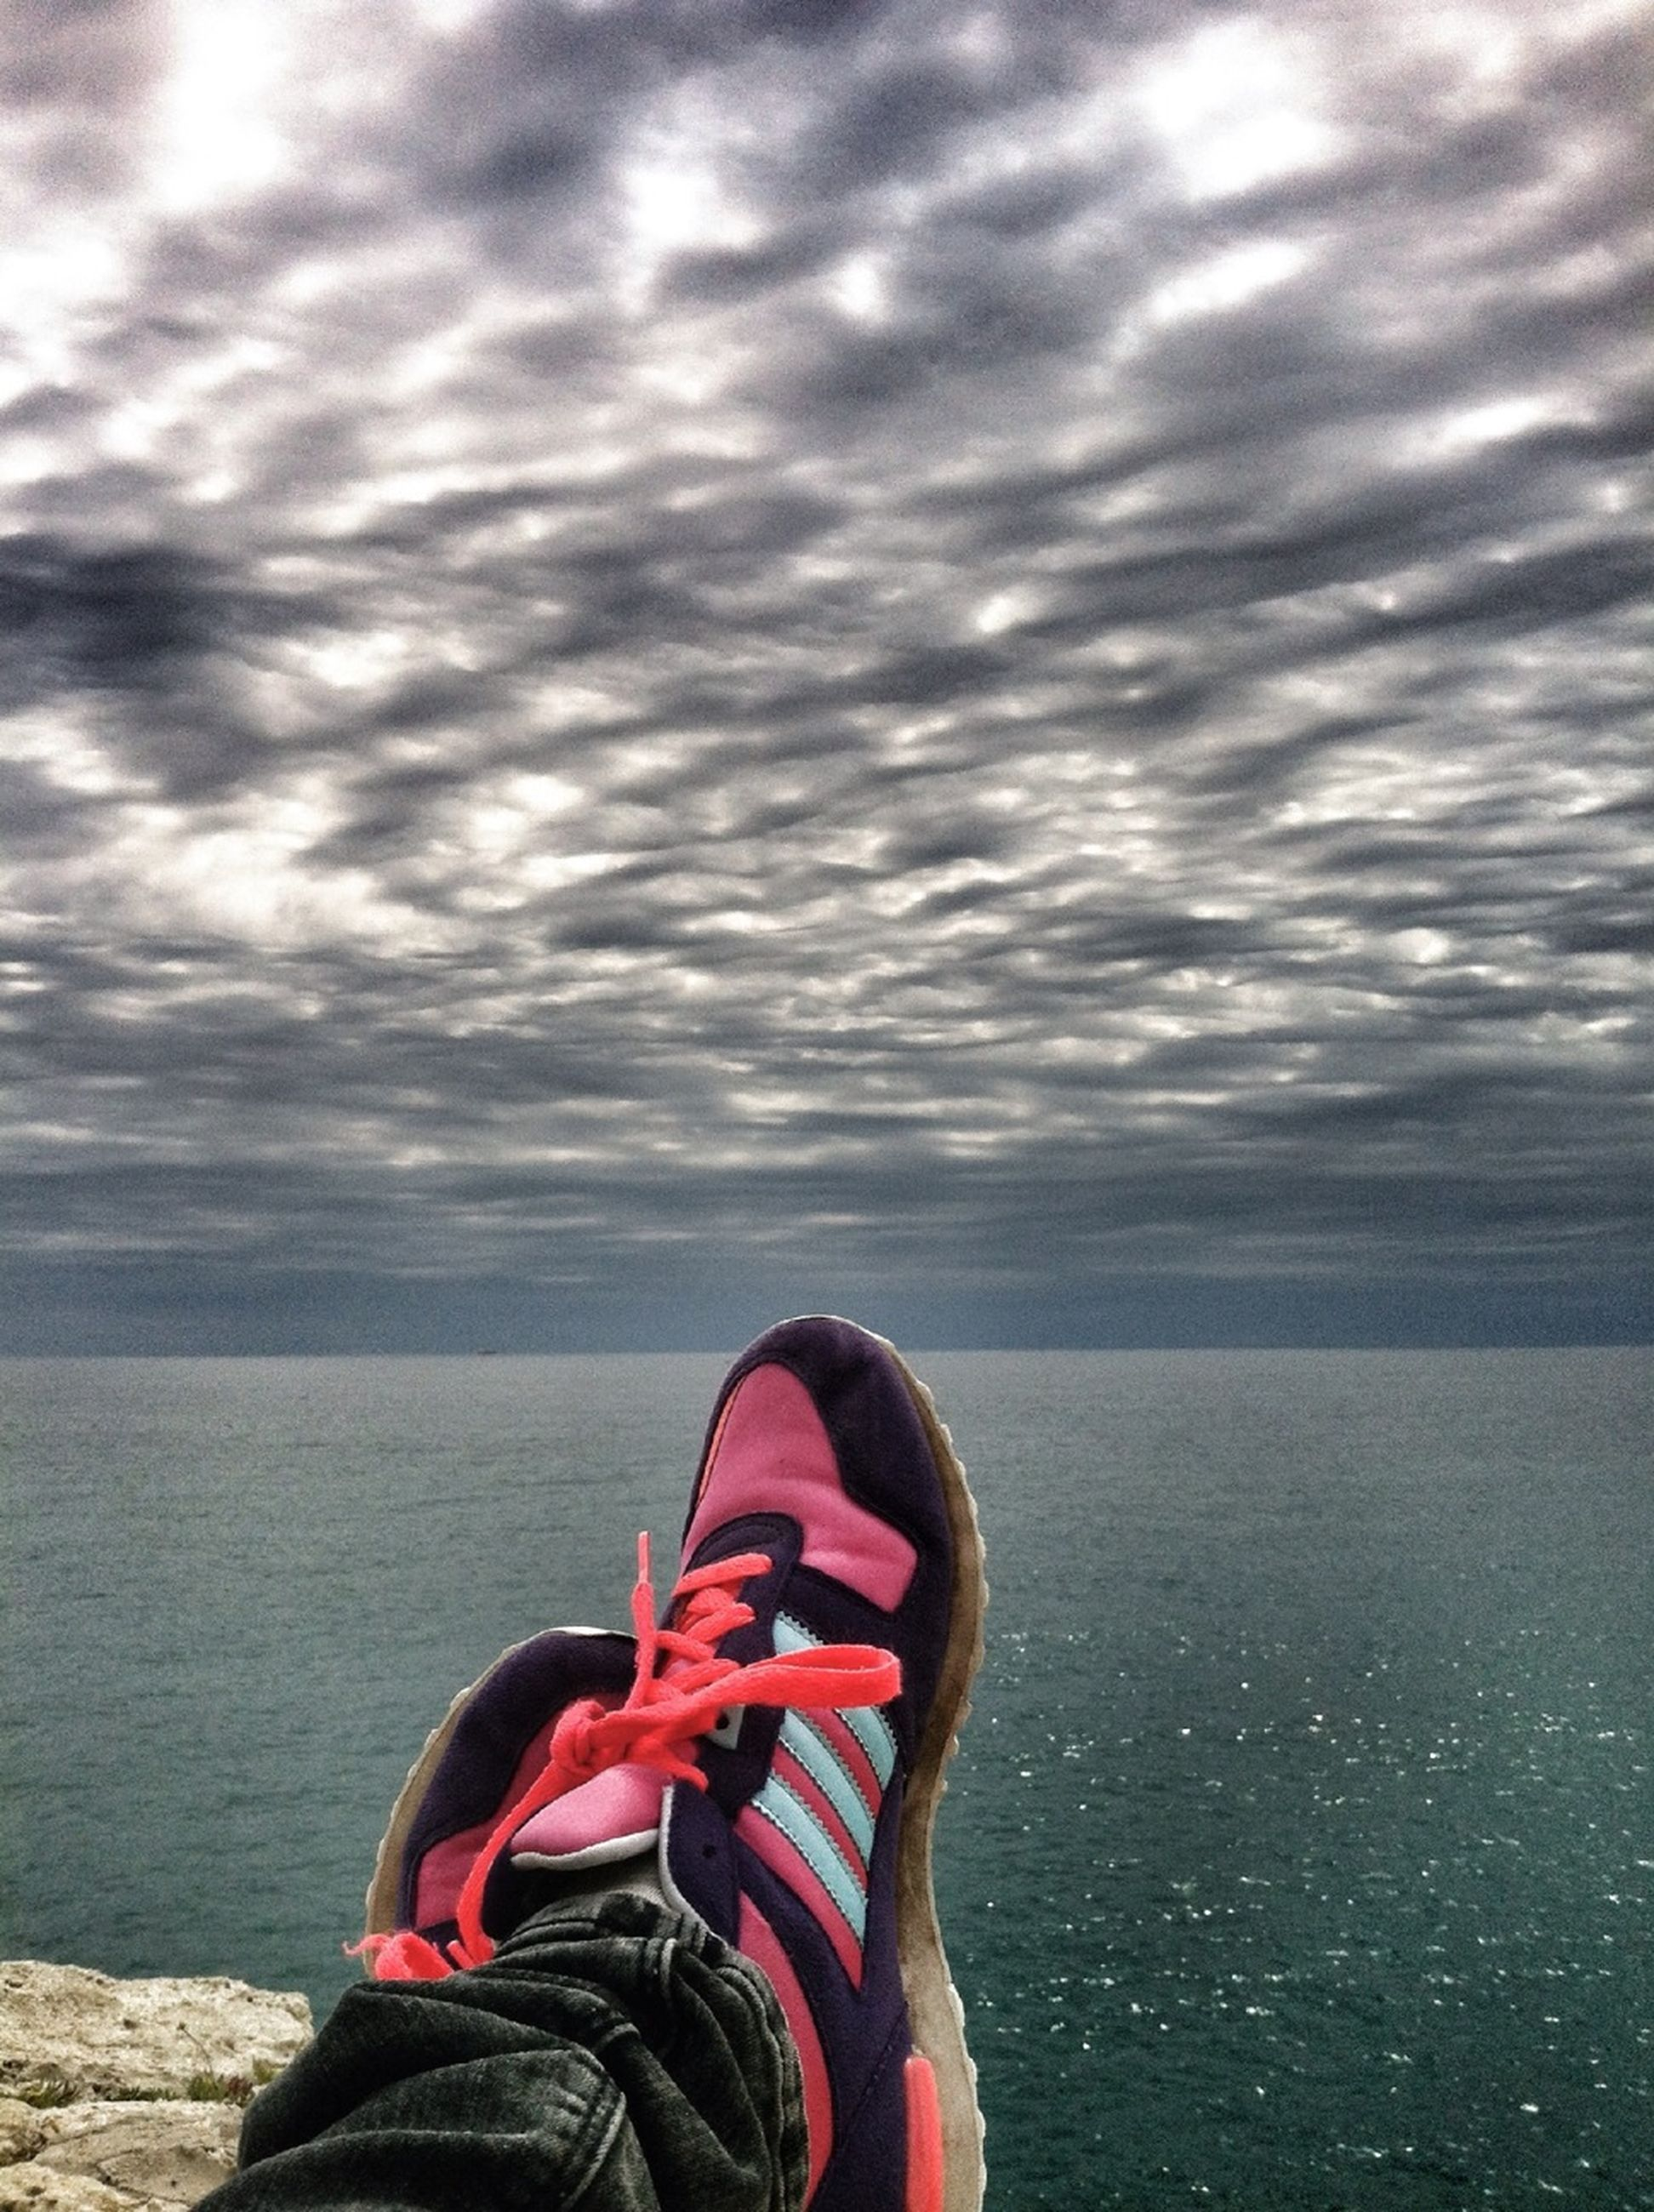 water, sky, low section, cloud - sky, person, sea, lifestyles, personal perspective, shoe, standing, cloudy, leisure activity, scenics, tranquility, horizon over water, cloud, tranquil scene, nature